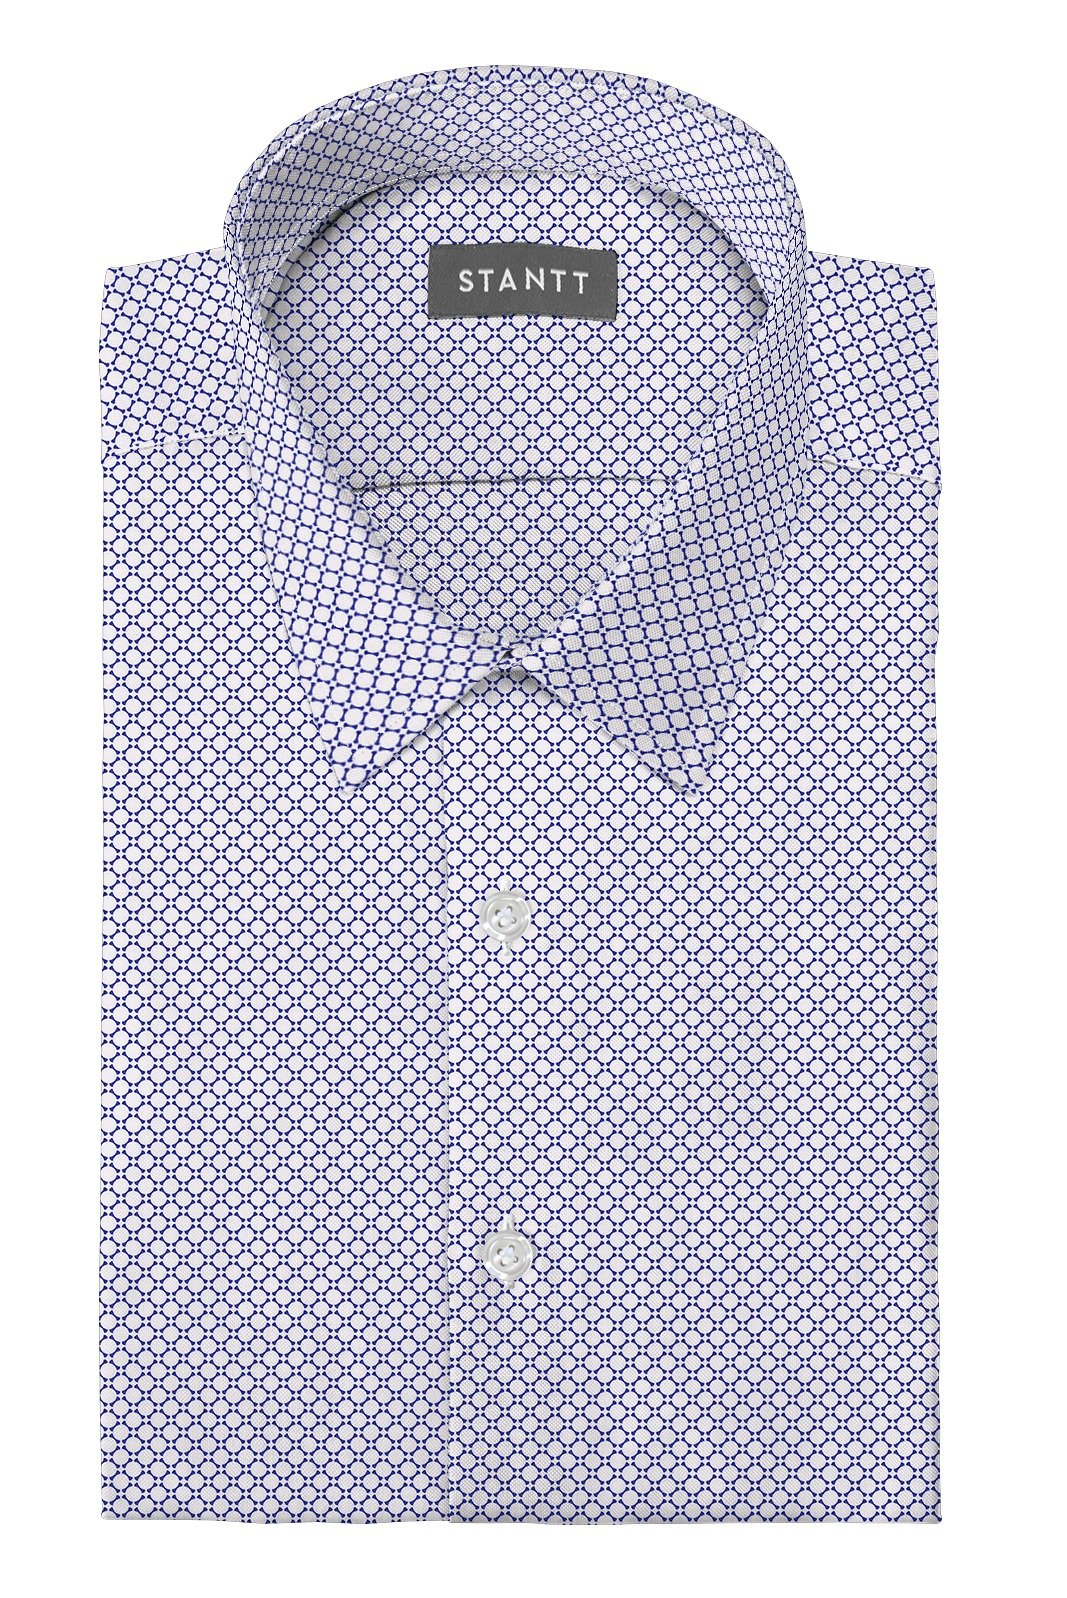 White and Blue Circle Print: Semi-Spread Collar, Barrel Cuff